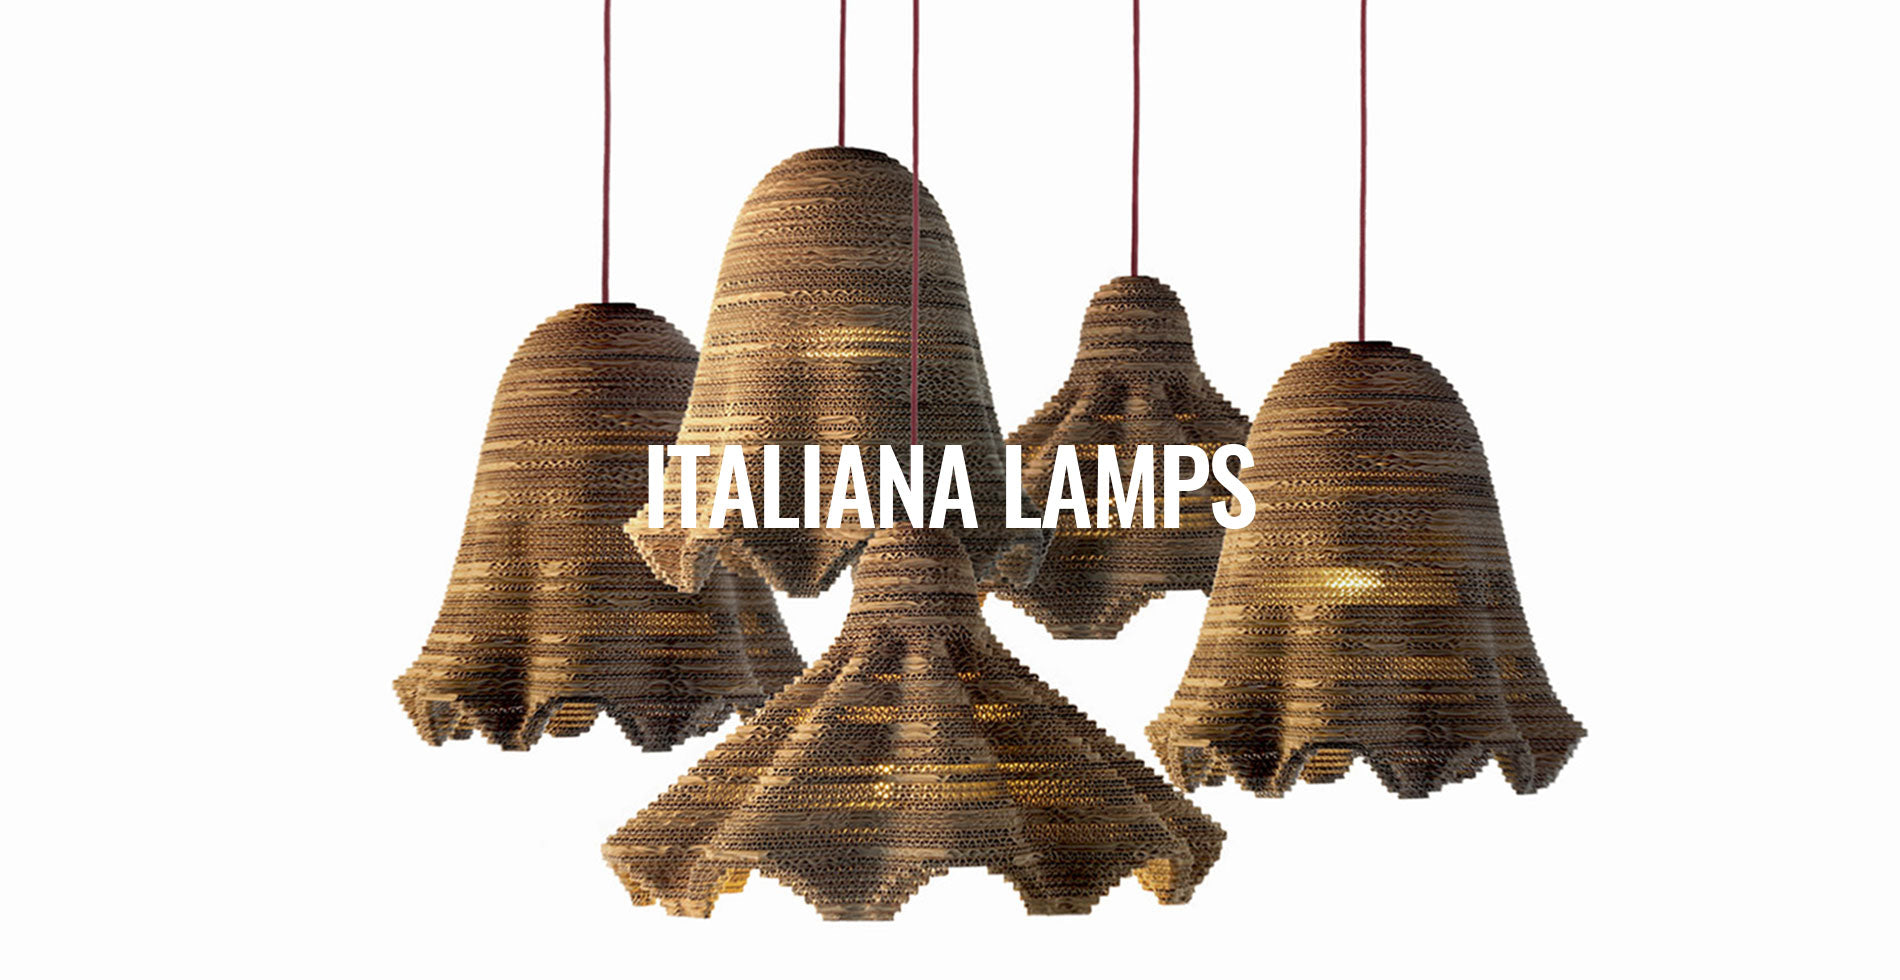 Eetico interior design| Recycled and sustainable cardboard lamps and lighting made in Tuscany, Italy